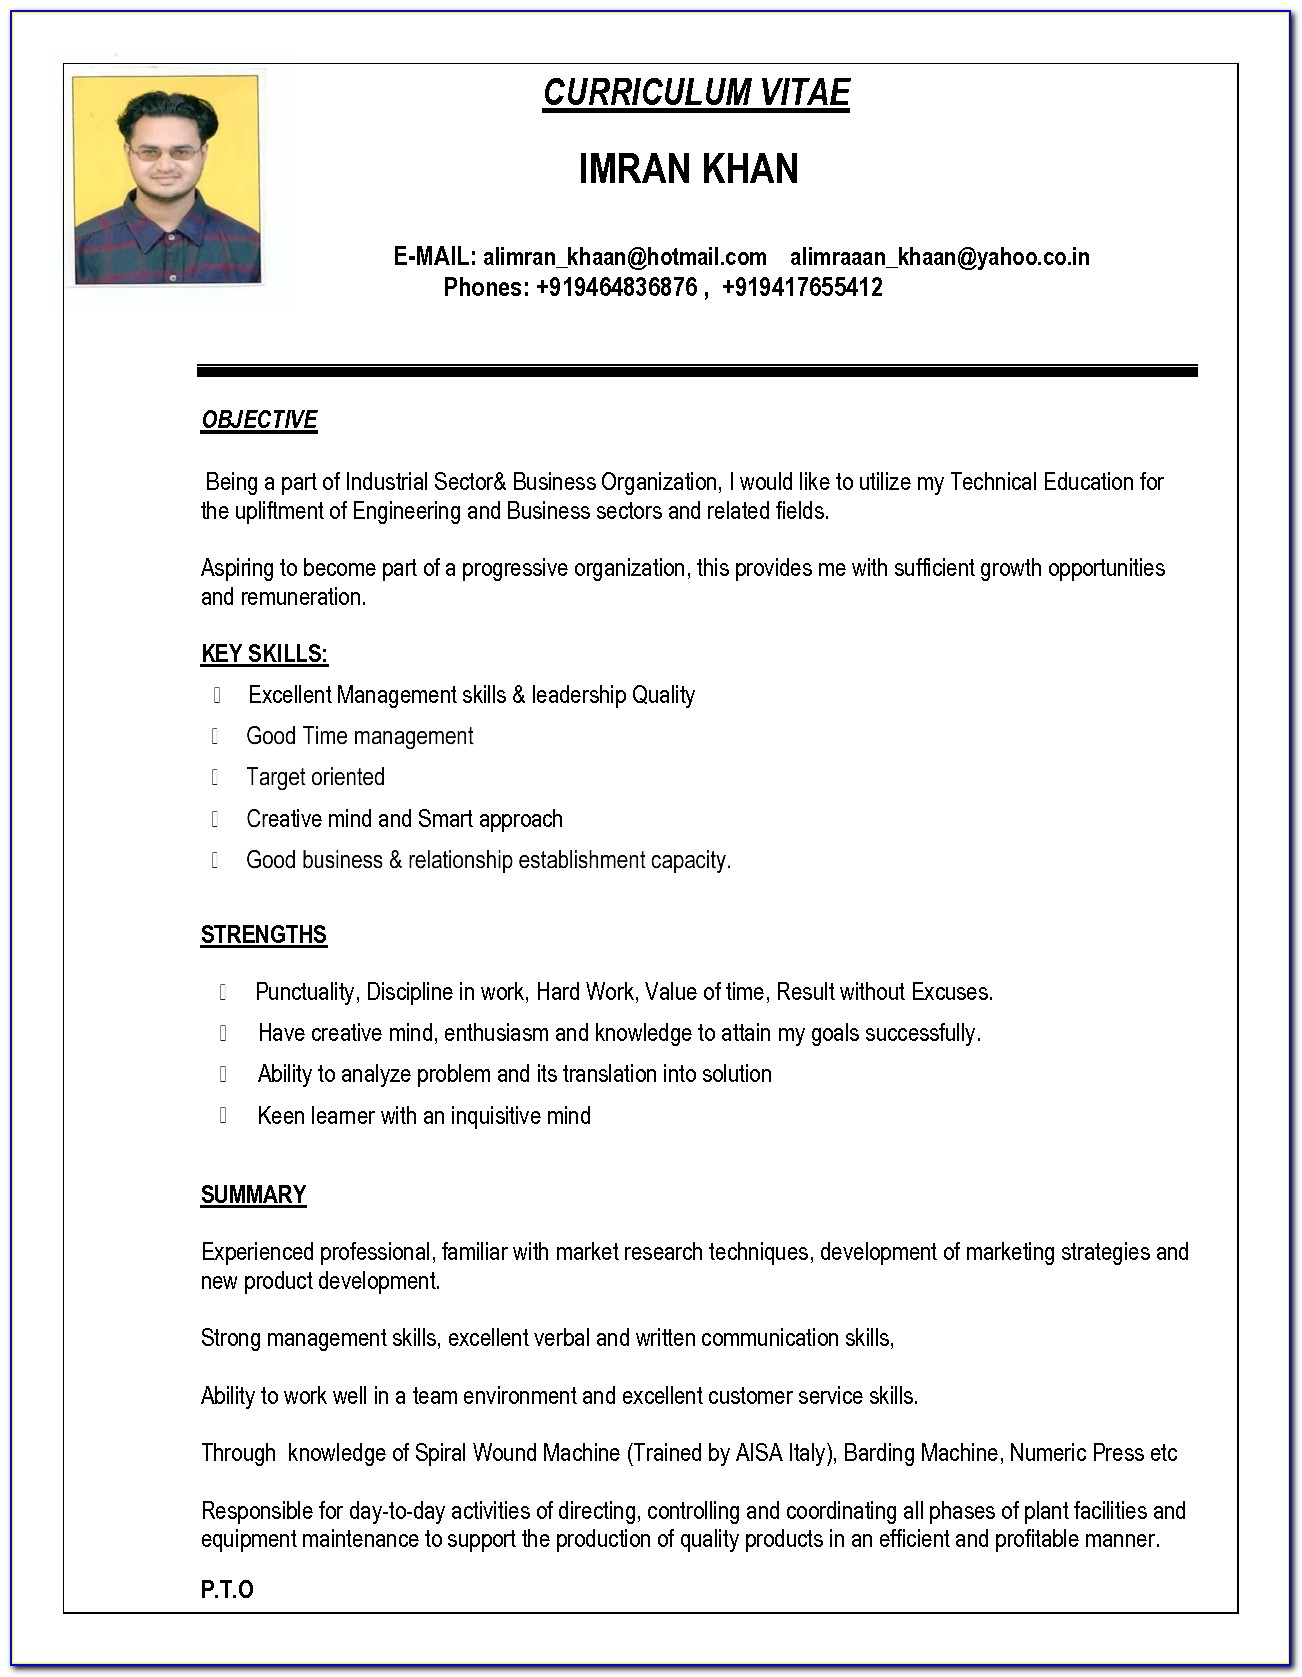 Matrimonial Resume Format Doc | Resume Format With Biodata Format For Marriage For Girl In Hindu Doc